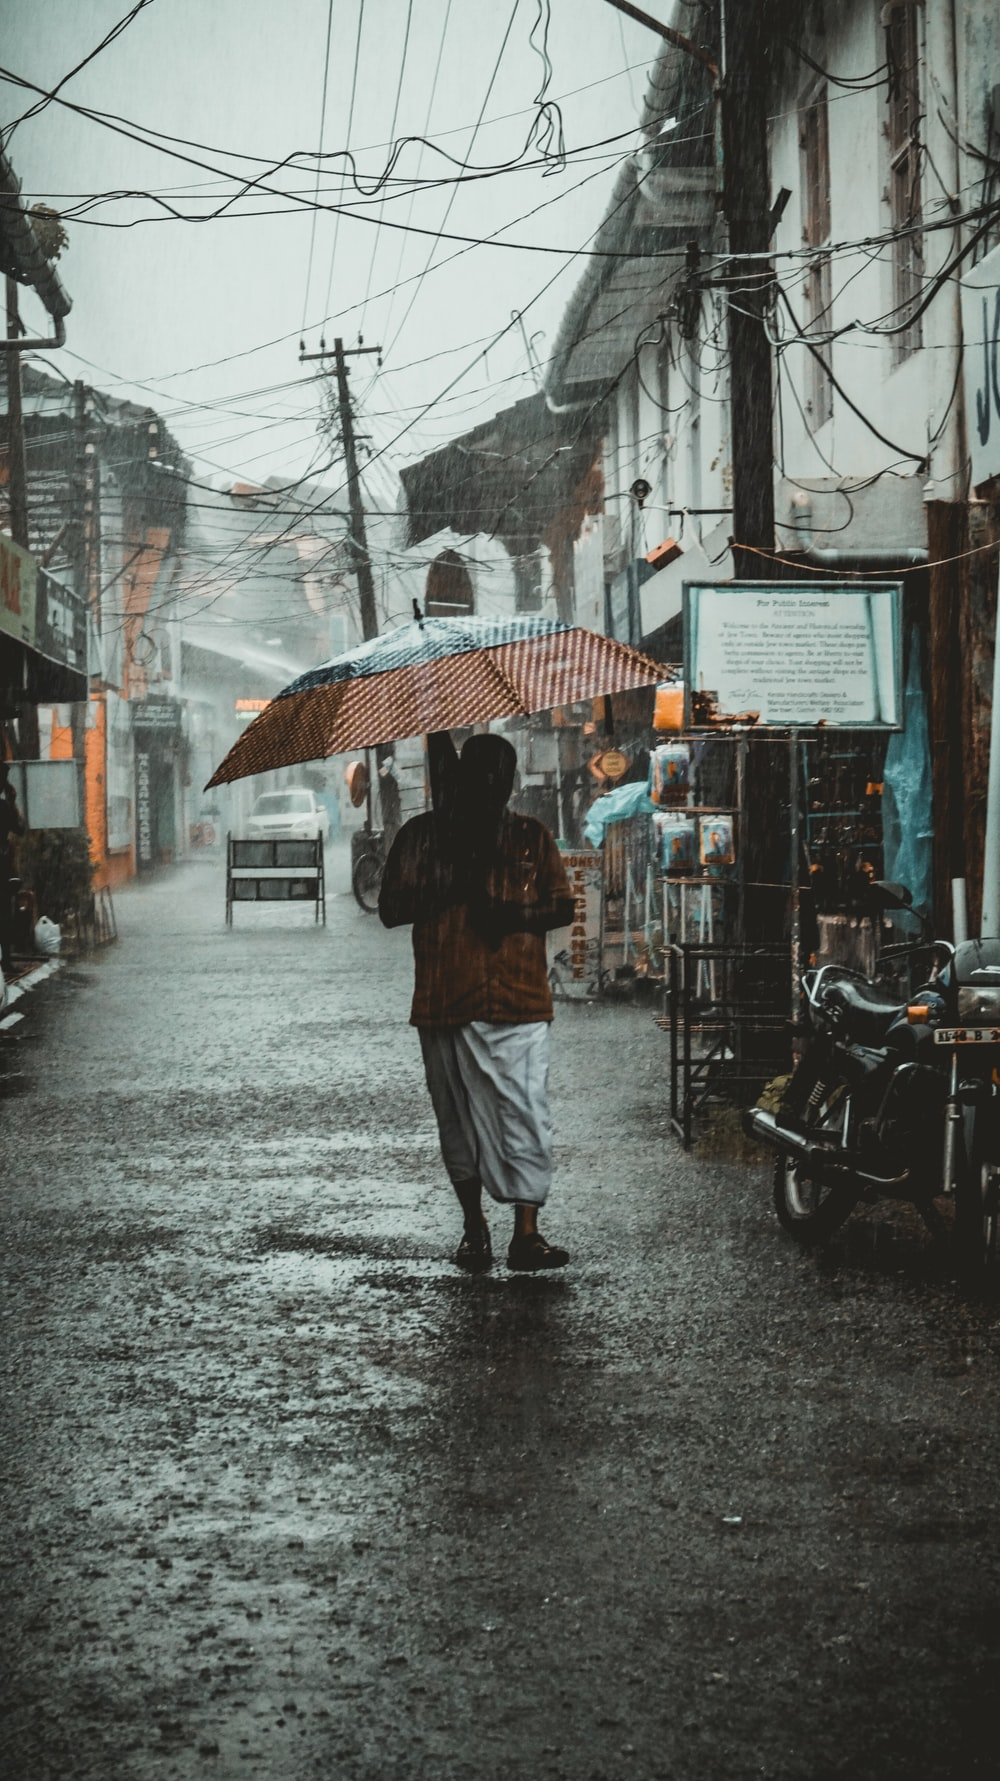 rain pictures hd download free images on unsplash